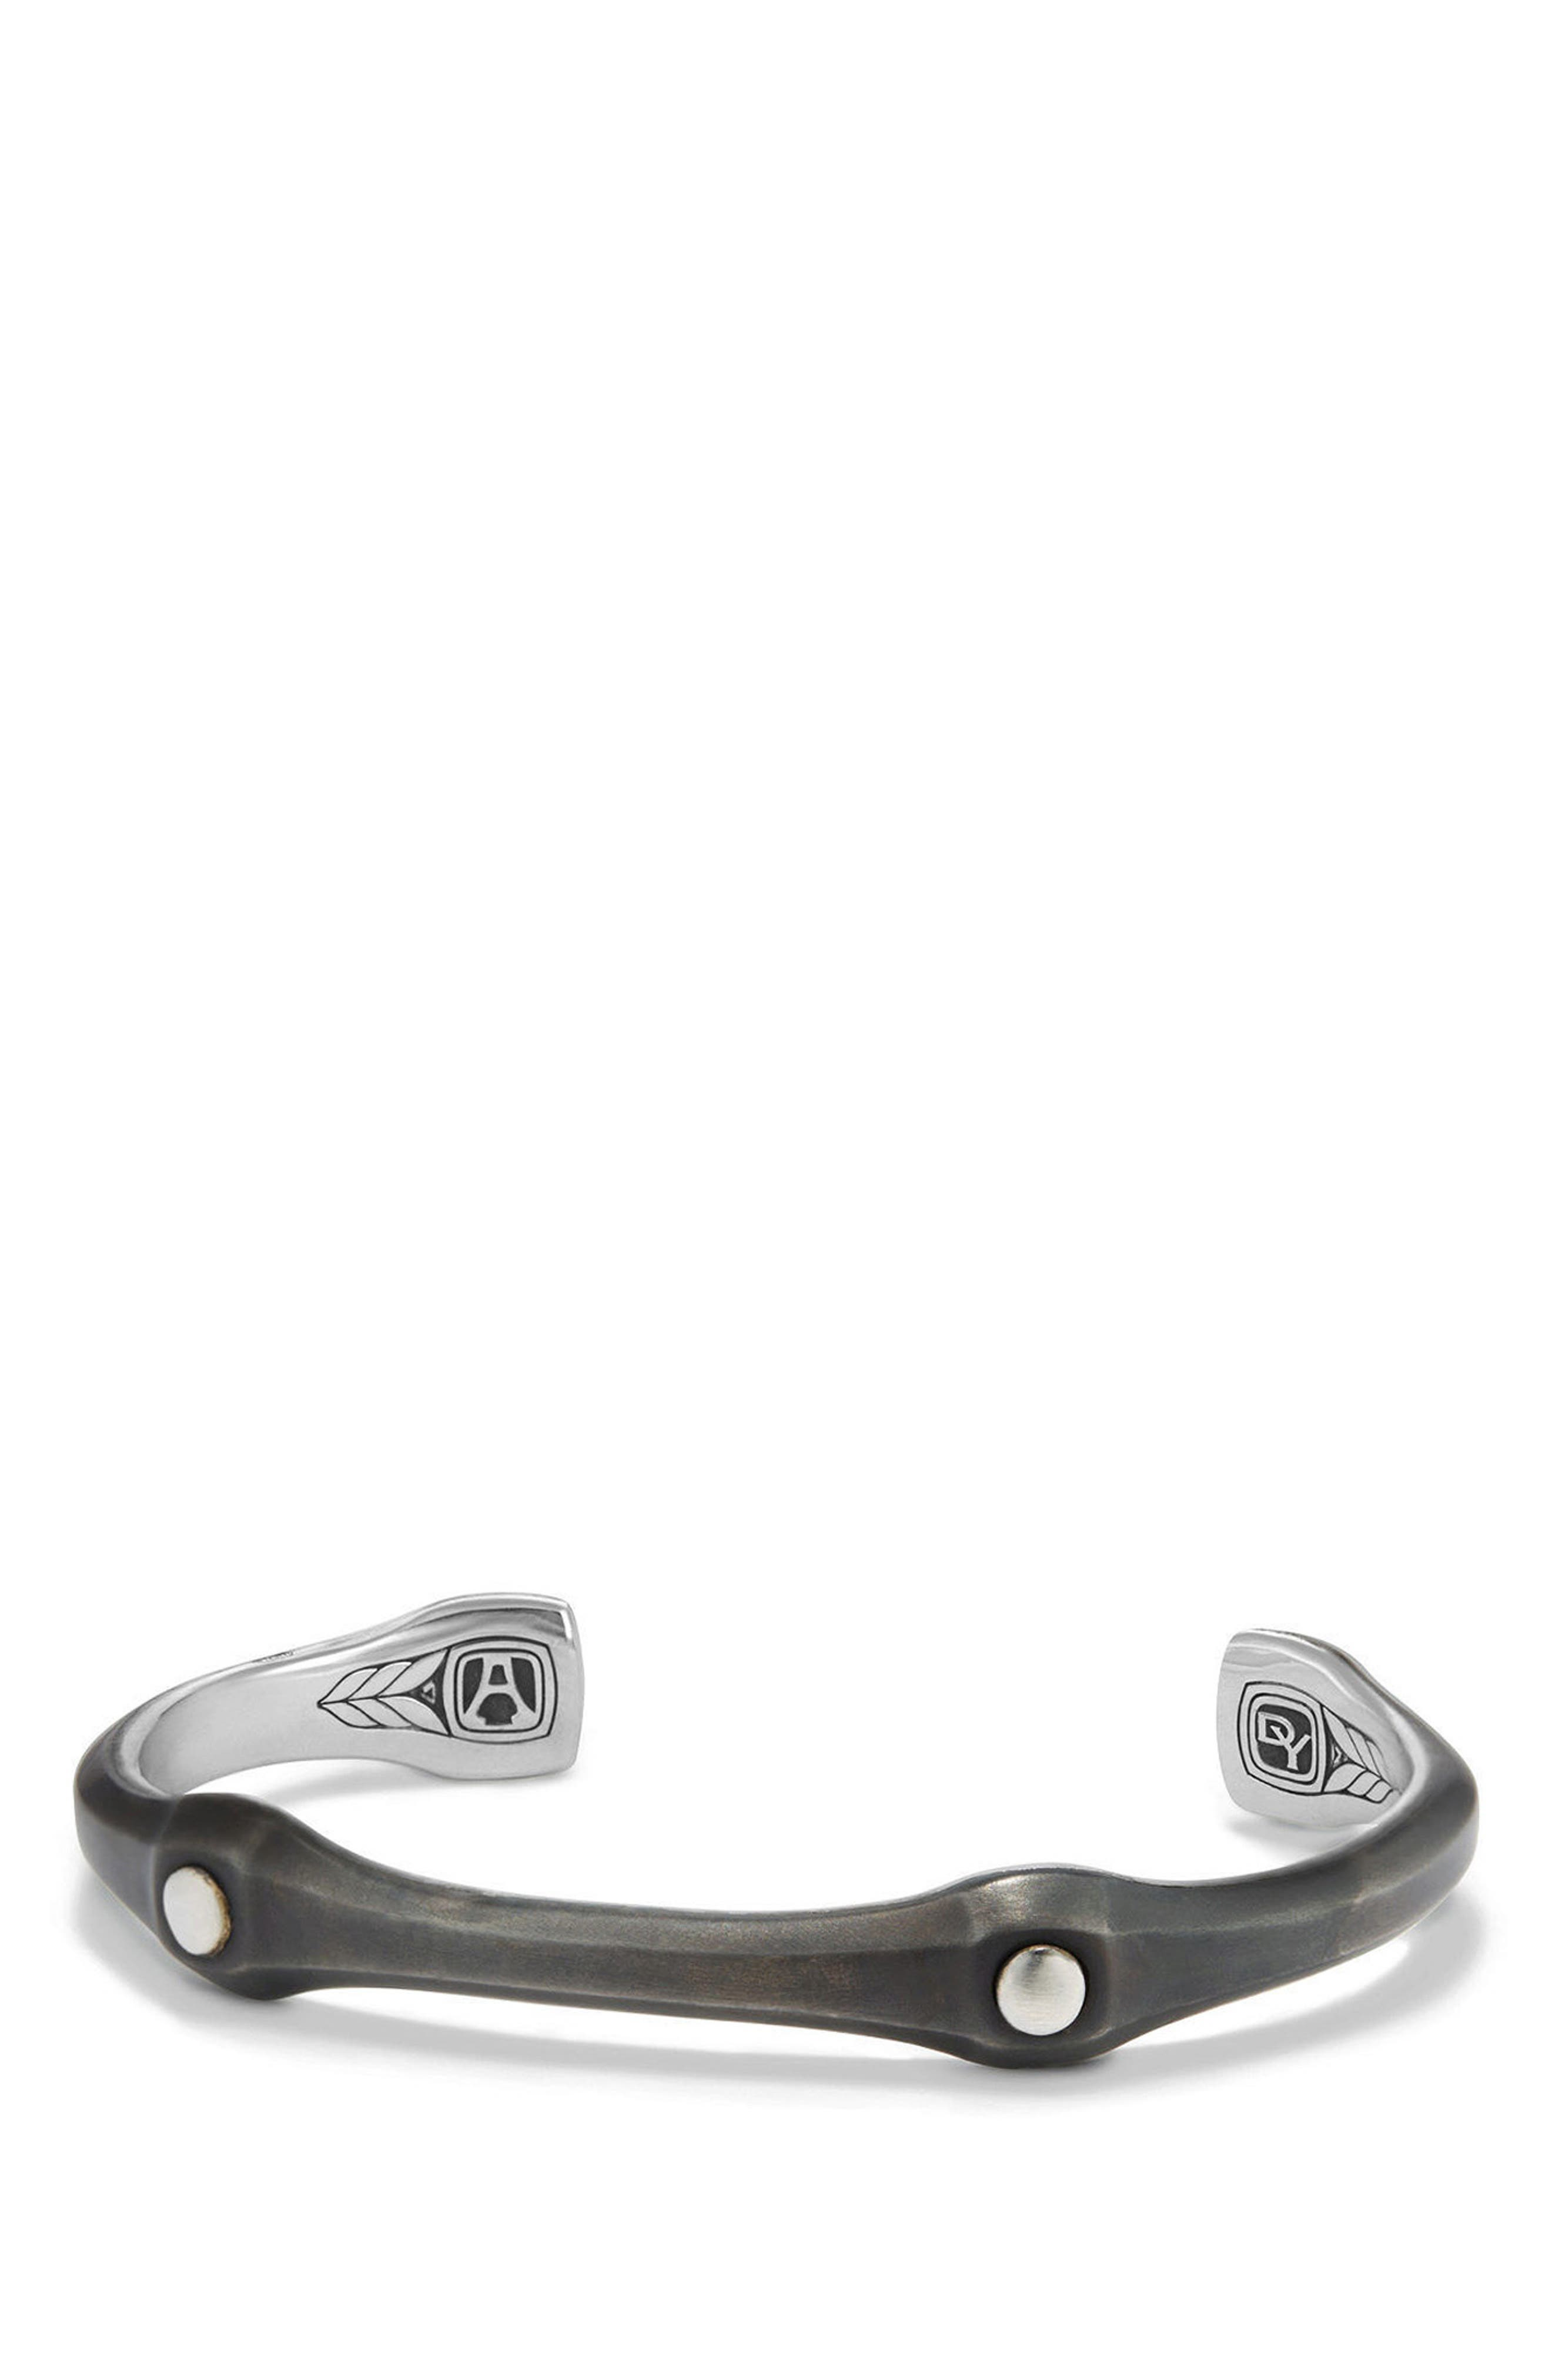 Anvil Cuff Bracelet with Black Diamond, 10.5mm, Main, color, 040